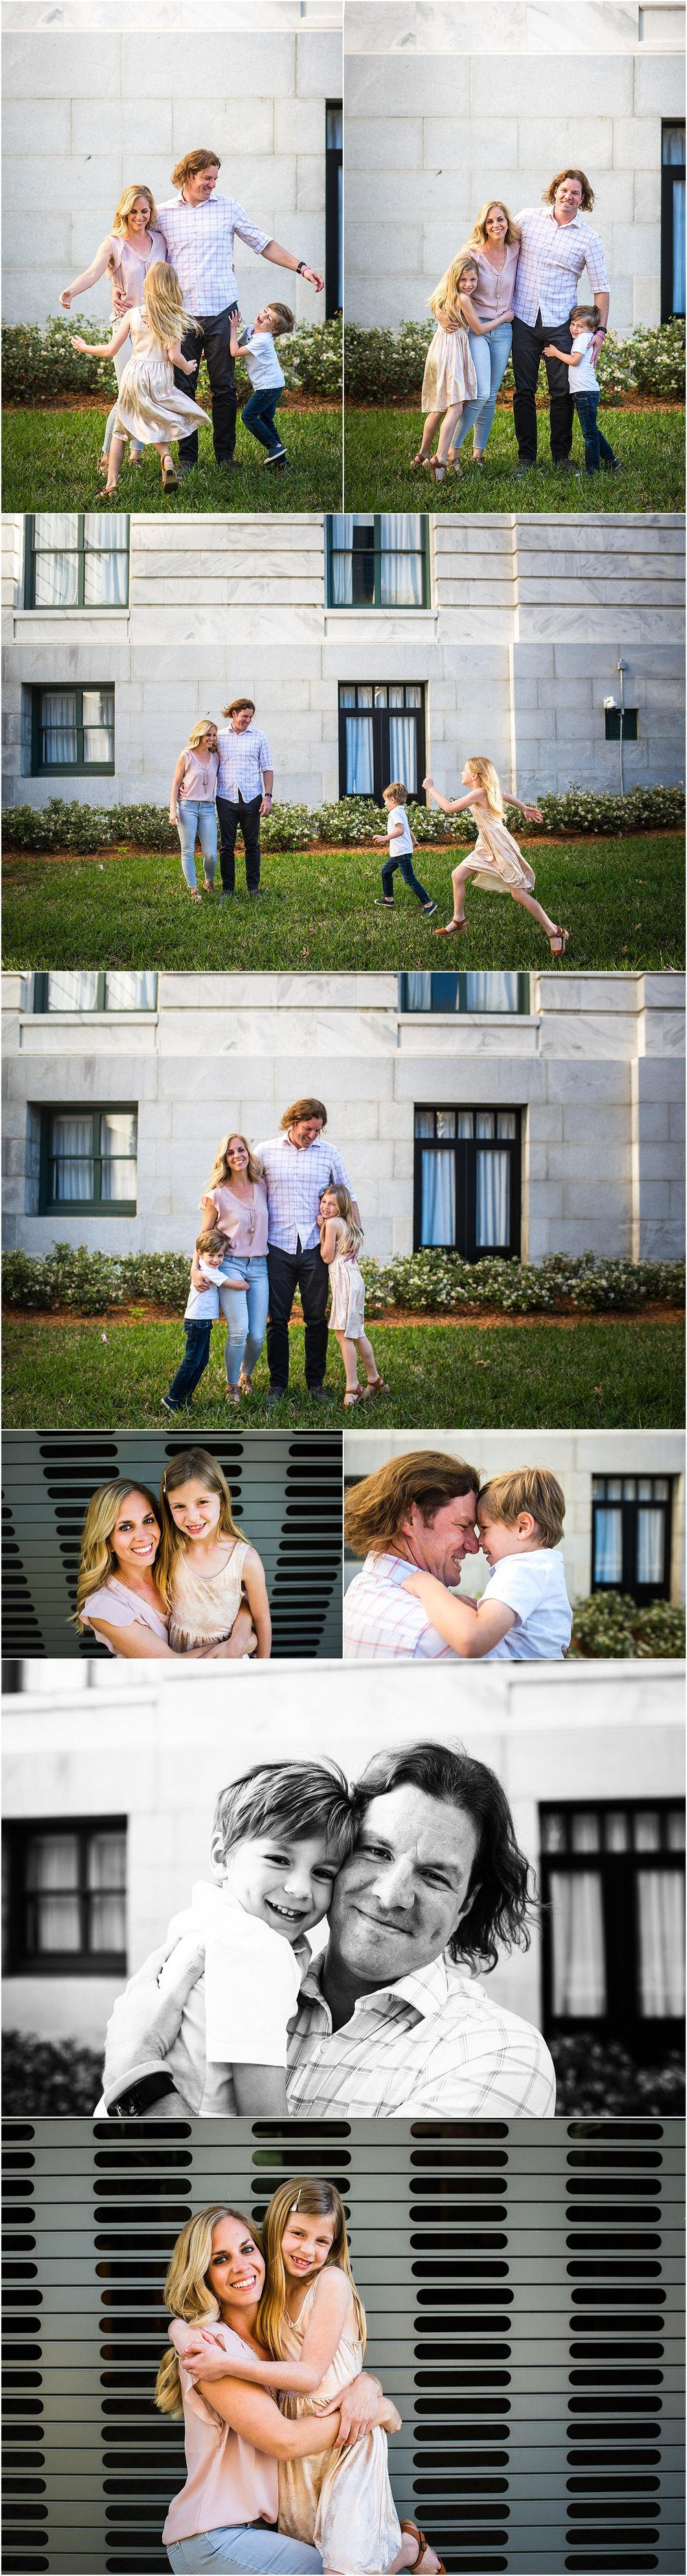 Tampa Family Downtown photo session.jpg